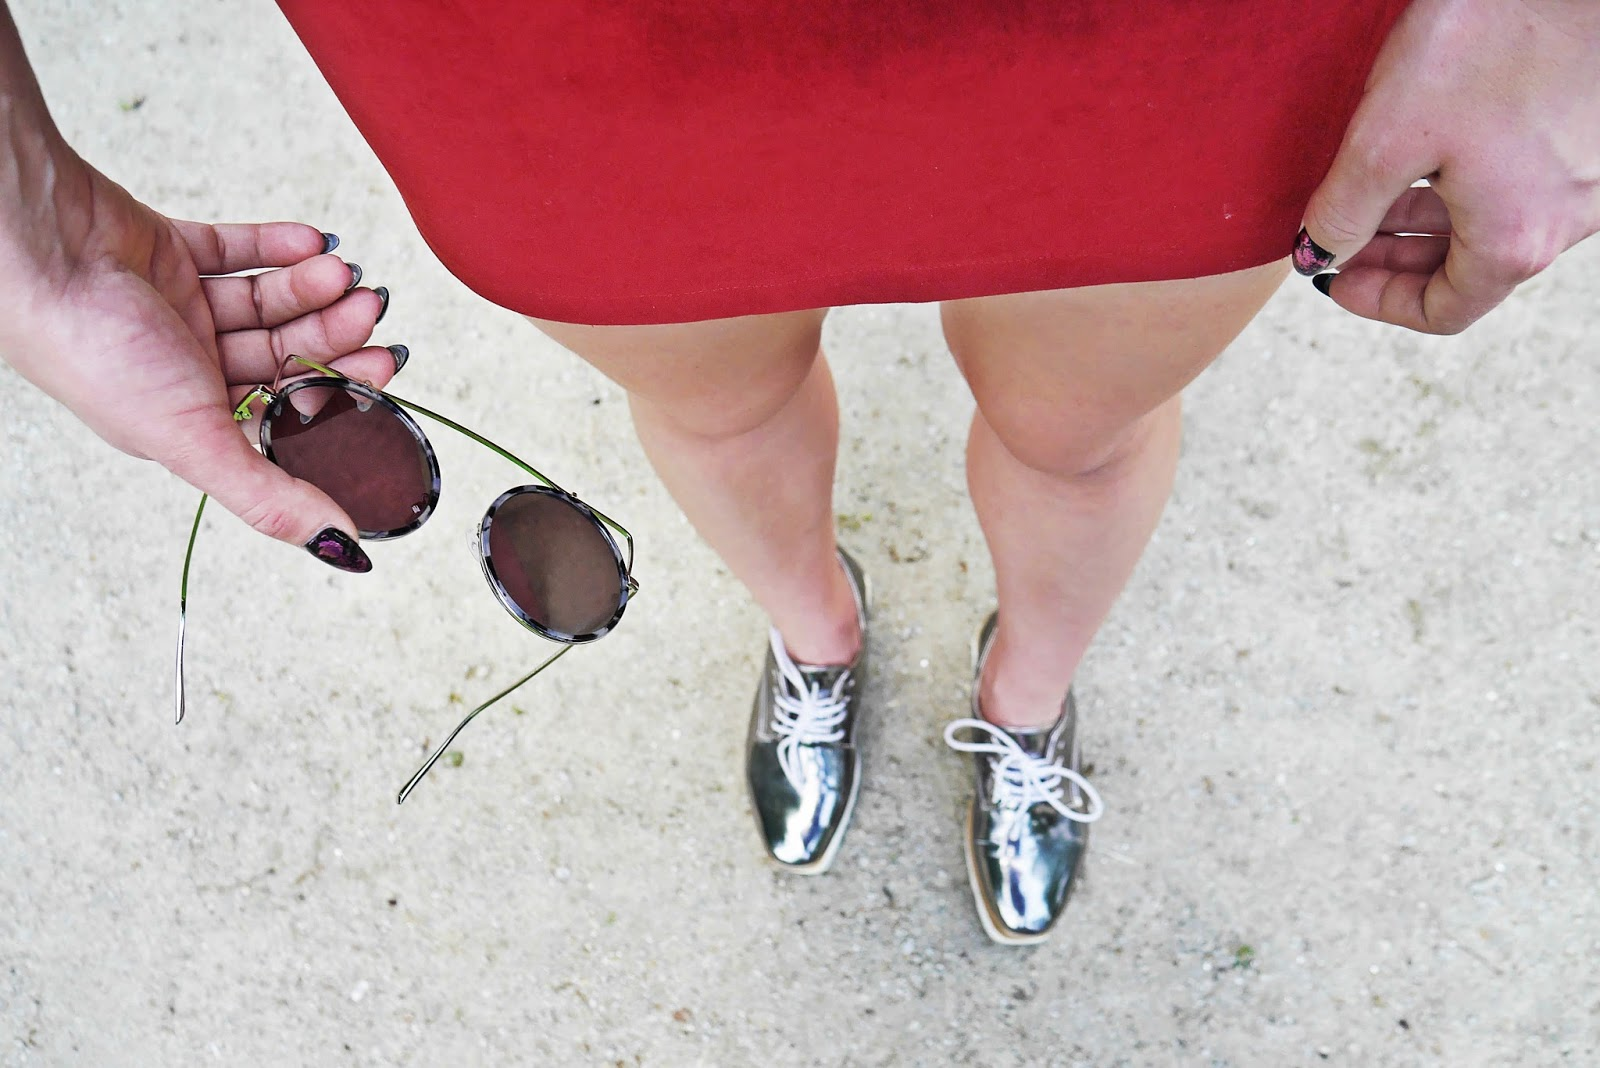 sequin_top_burgundy_skirt_platform_silver_shoes_karyn_blog_300517asd